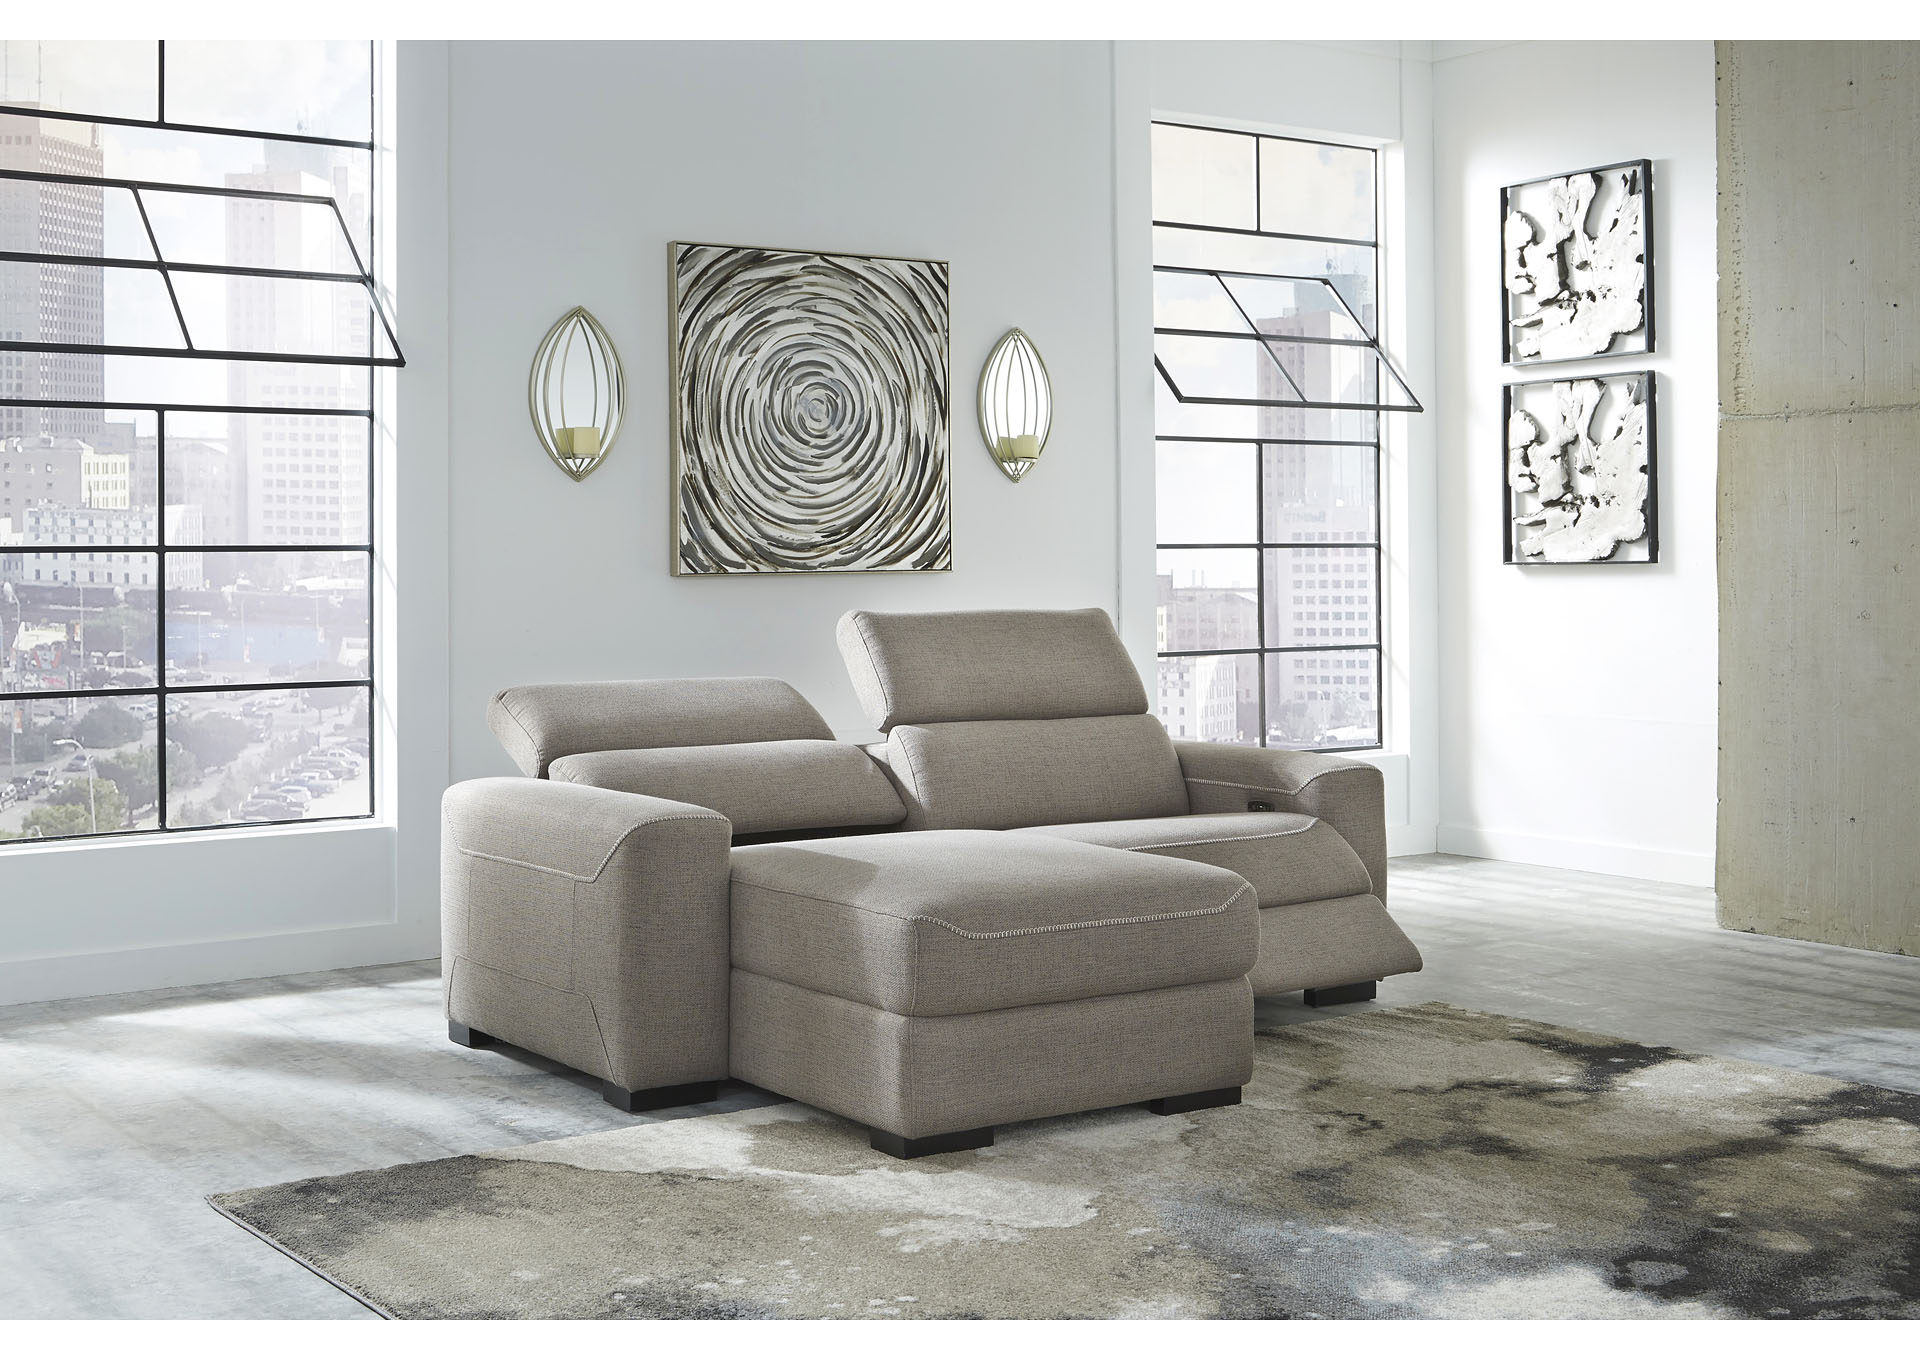 Well Known 2pc Maddox Right Arm Facing Sectional Sofas With Chaise Brown Throughout Mabton Gray Right Arm Facing Power Reclining 2 Piece (View 13 of 20)